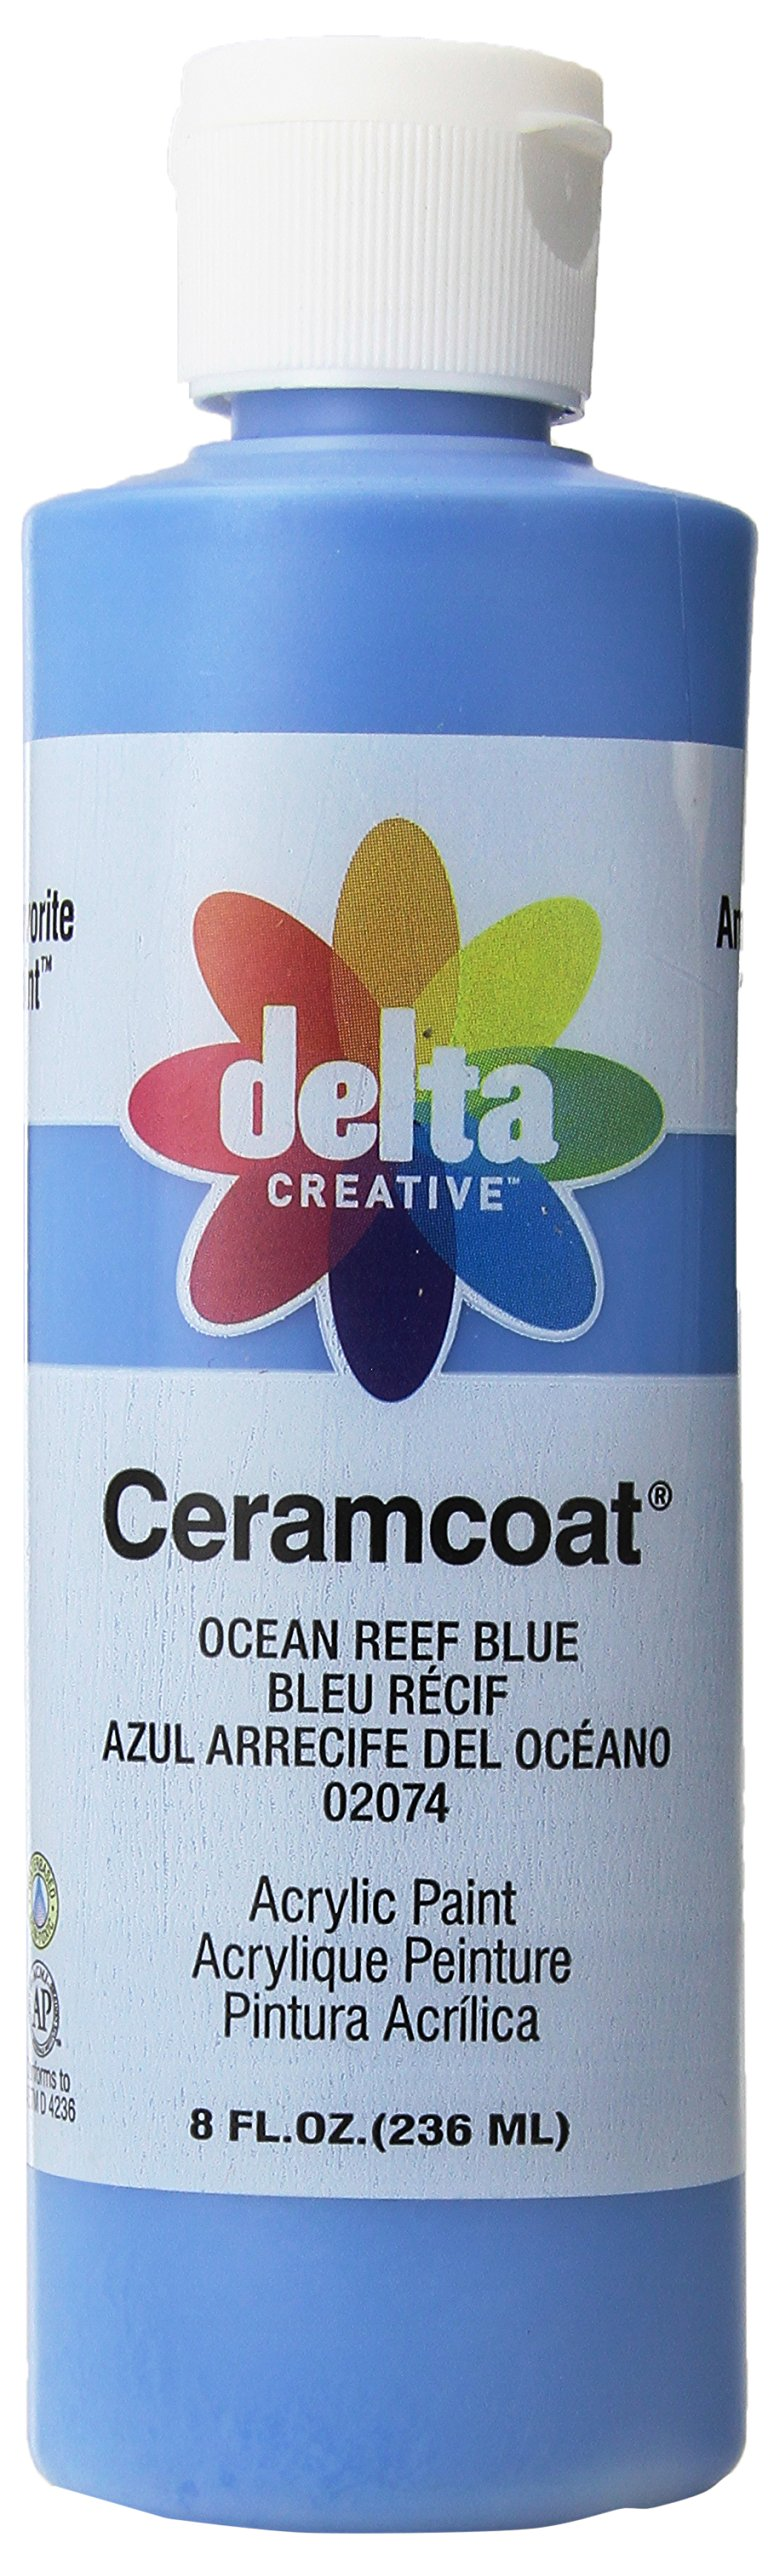 Delta Creative Ceramcoat Acrylic Paint in Assorted Colors (8 oz), , Ocean Reef Blue